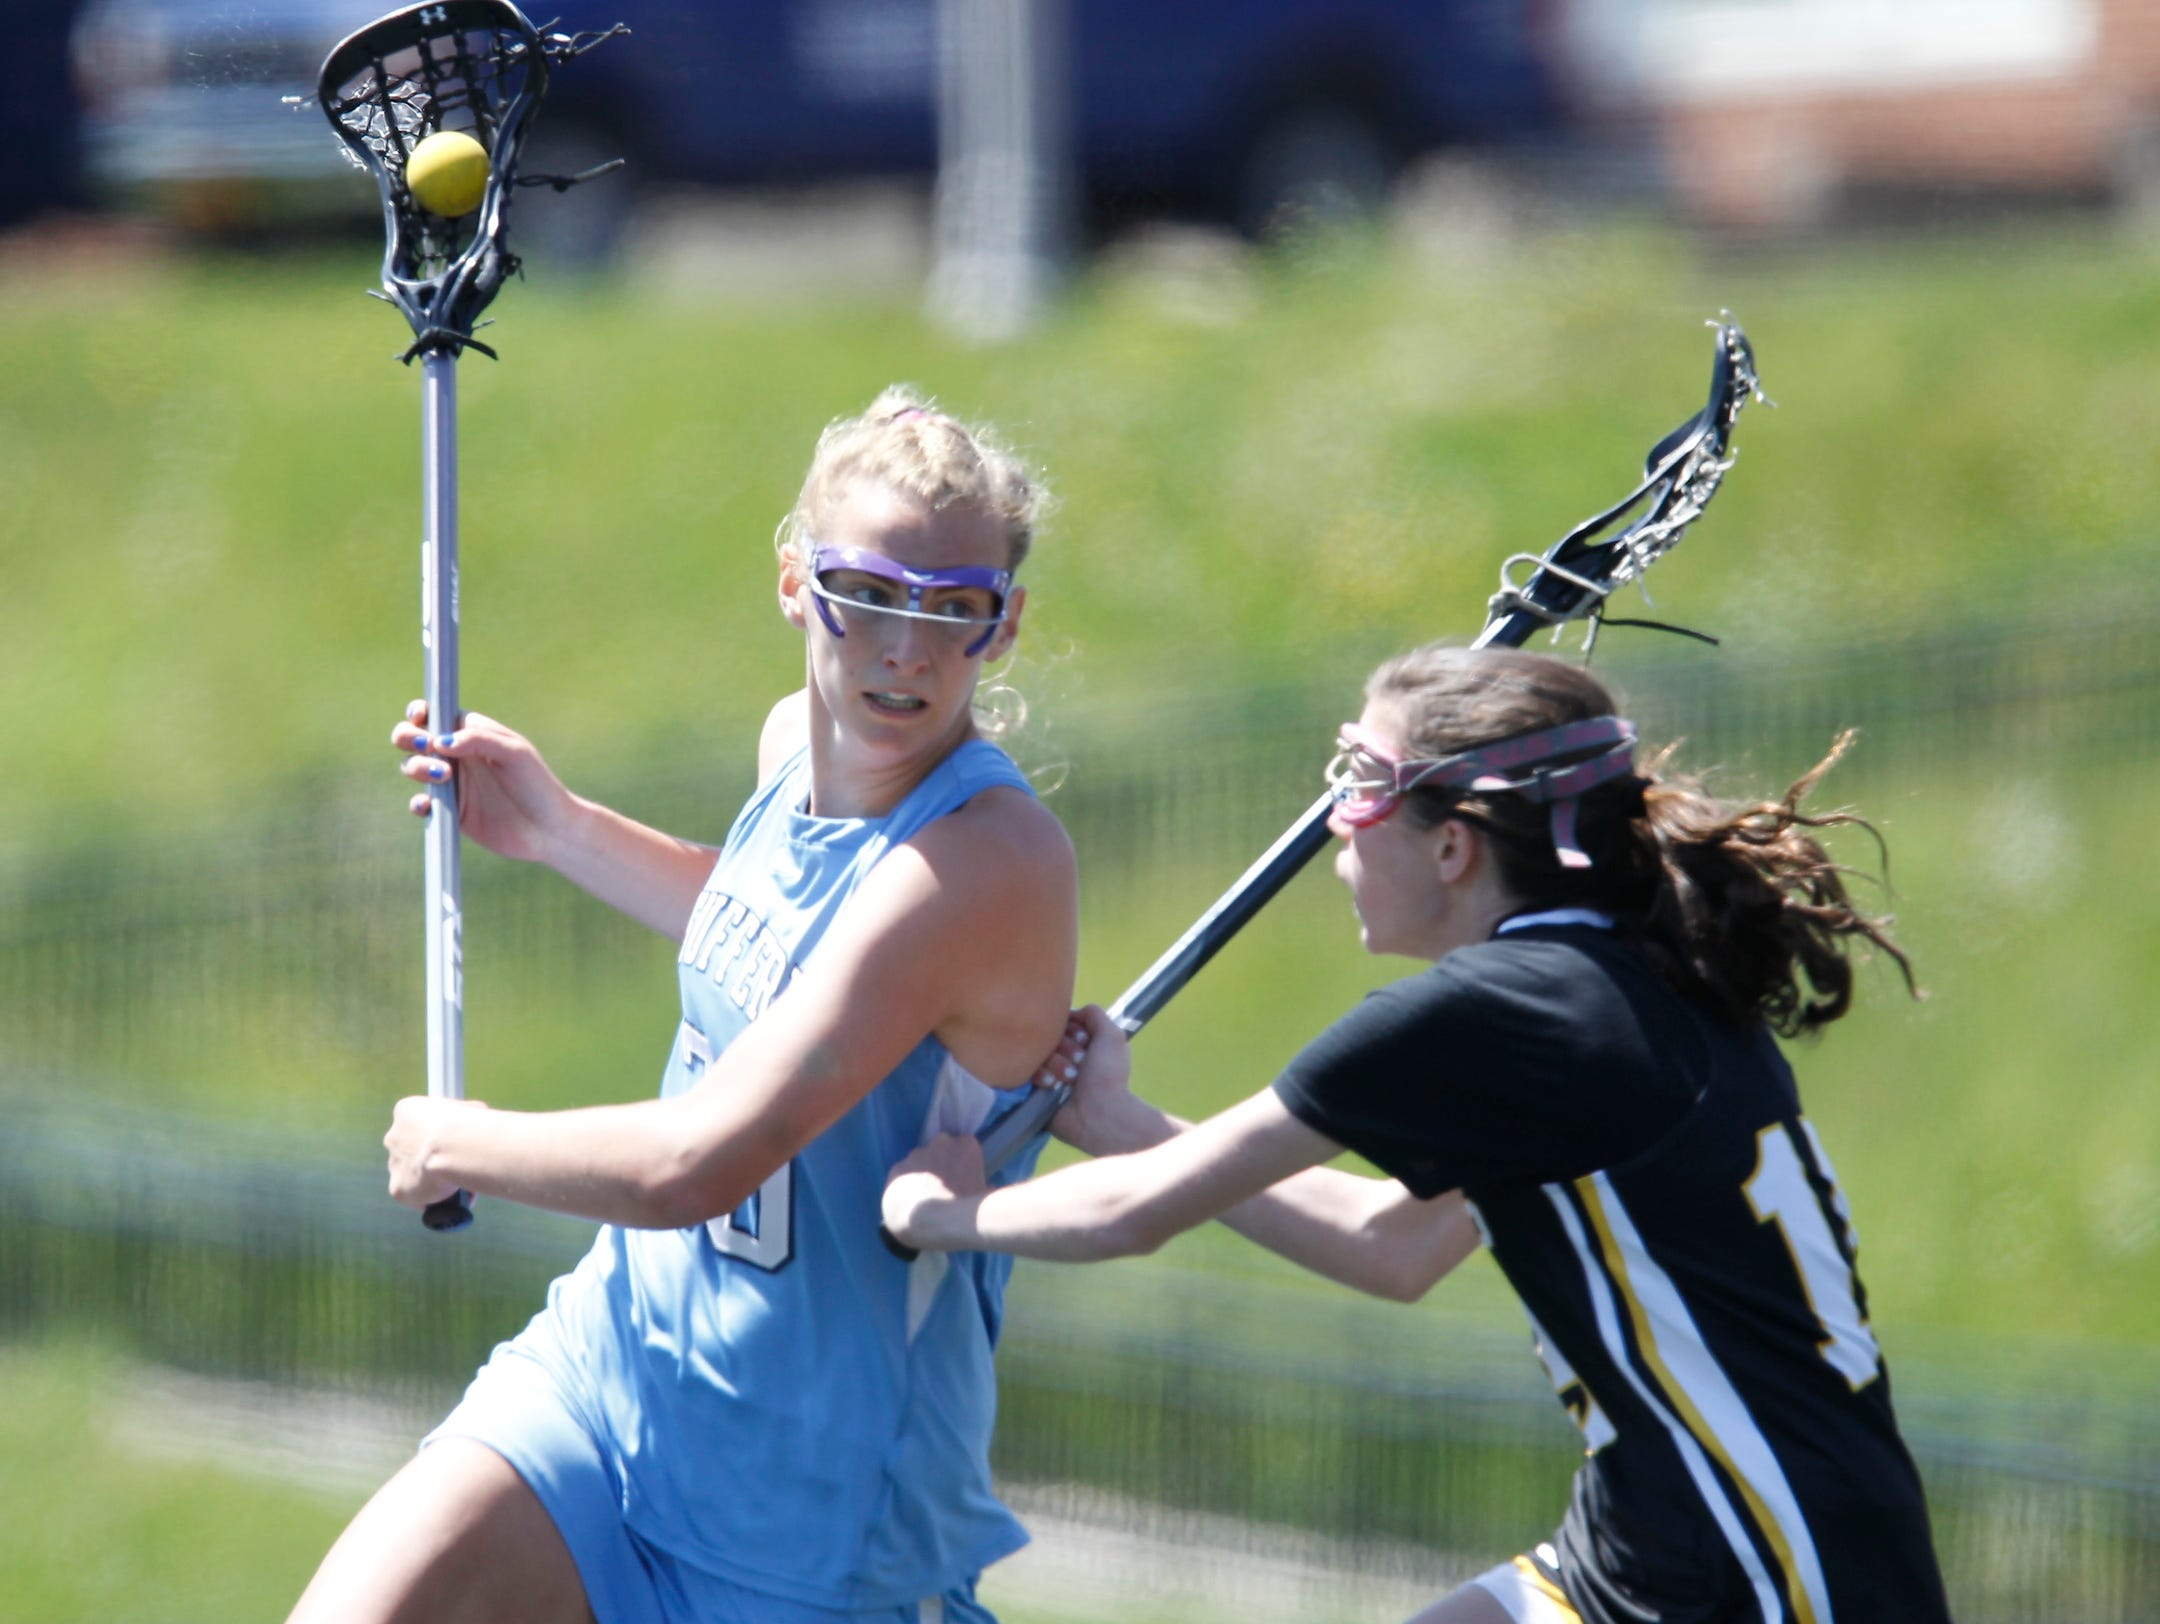 Suffern's Elizabeth Trojan (20) cradles the ball during a girls lacrosse game against St. Anthony's at Suffern Middle School in Suffern on Saturday, April 30, 2016. Suffern won 8-7.